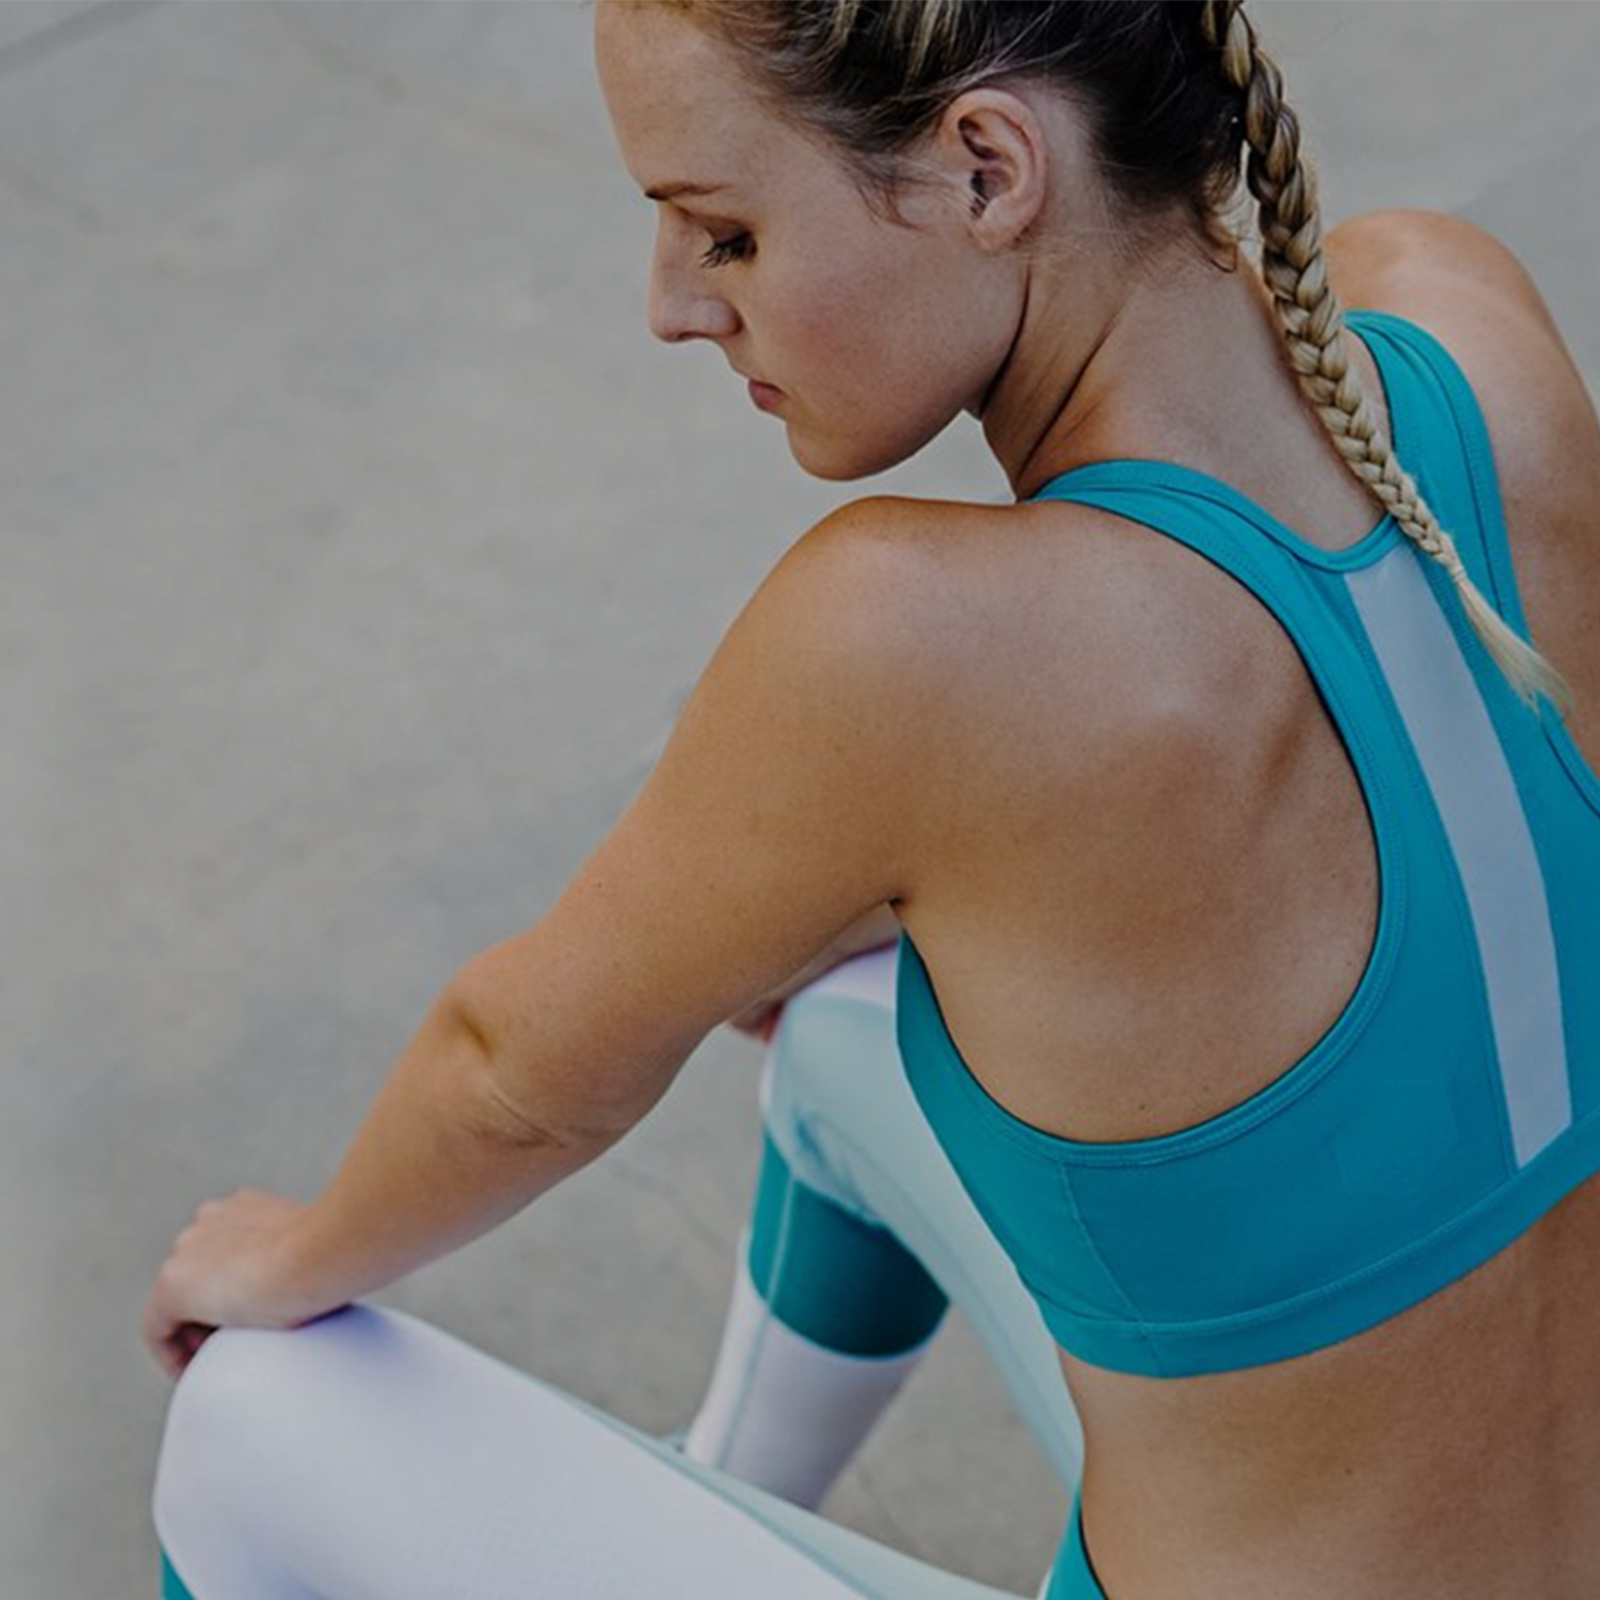 Seated woman dressed in blue and white sports bra and leggings.